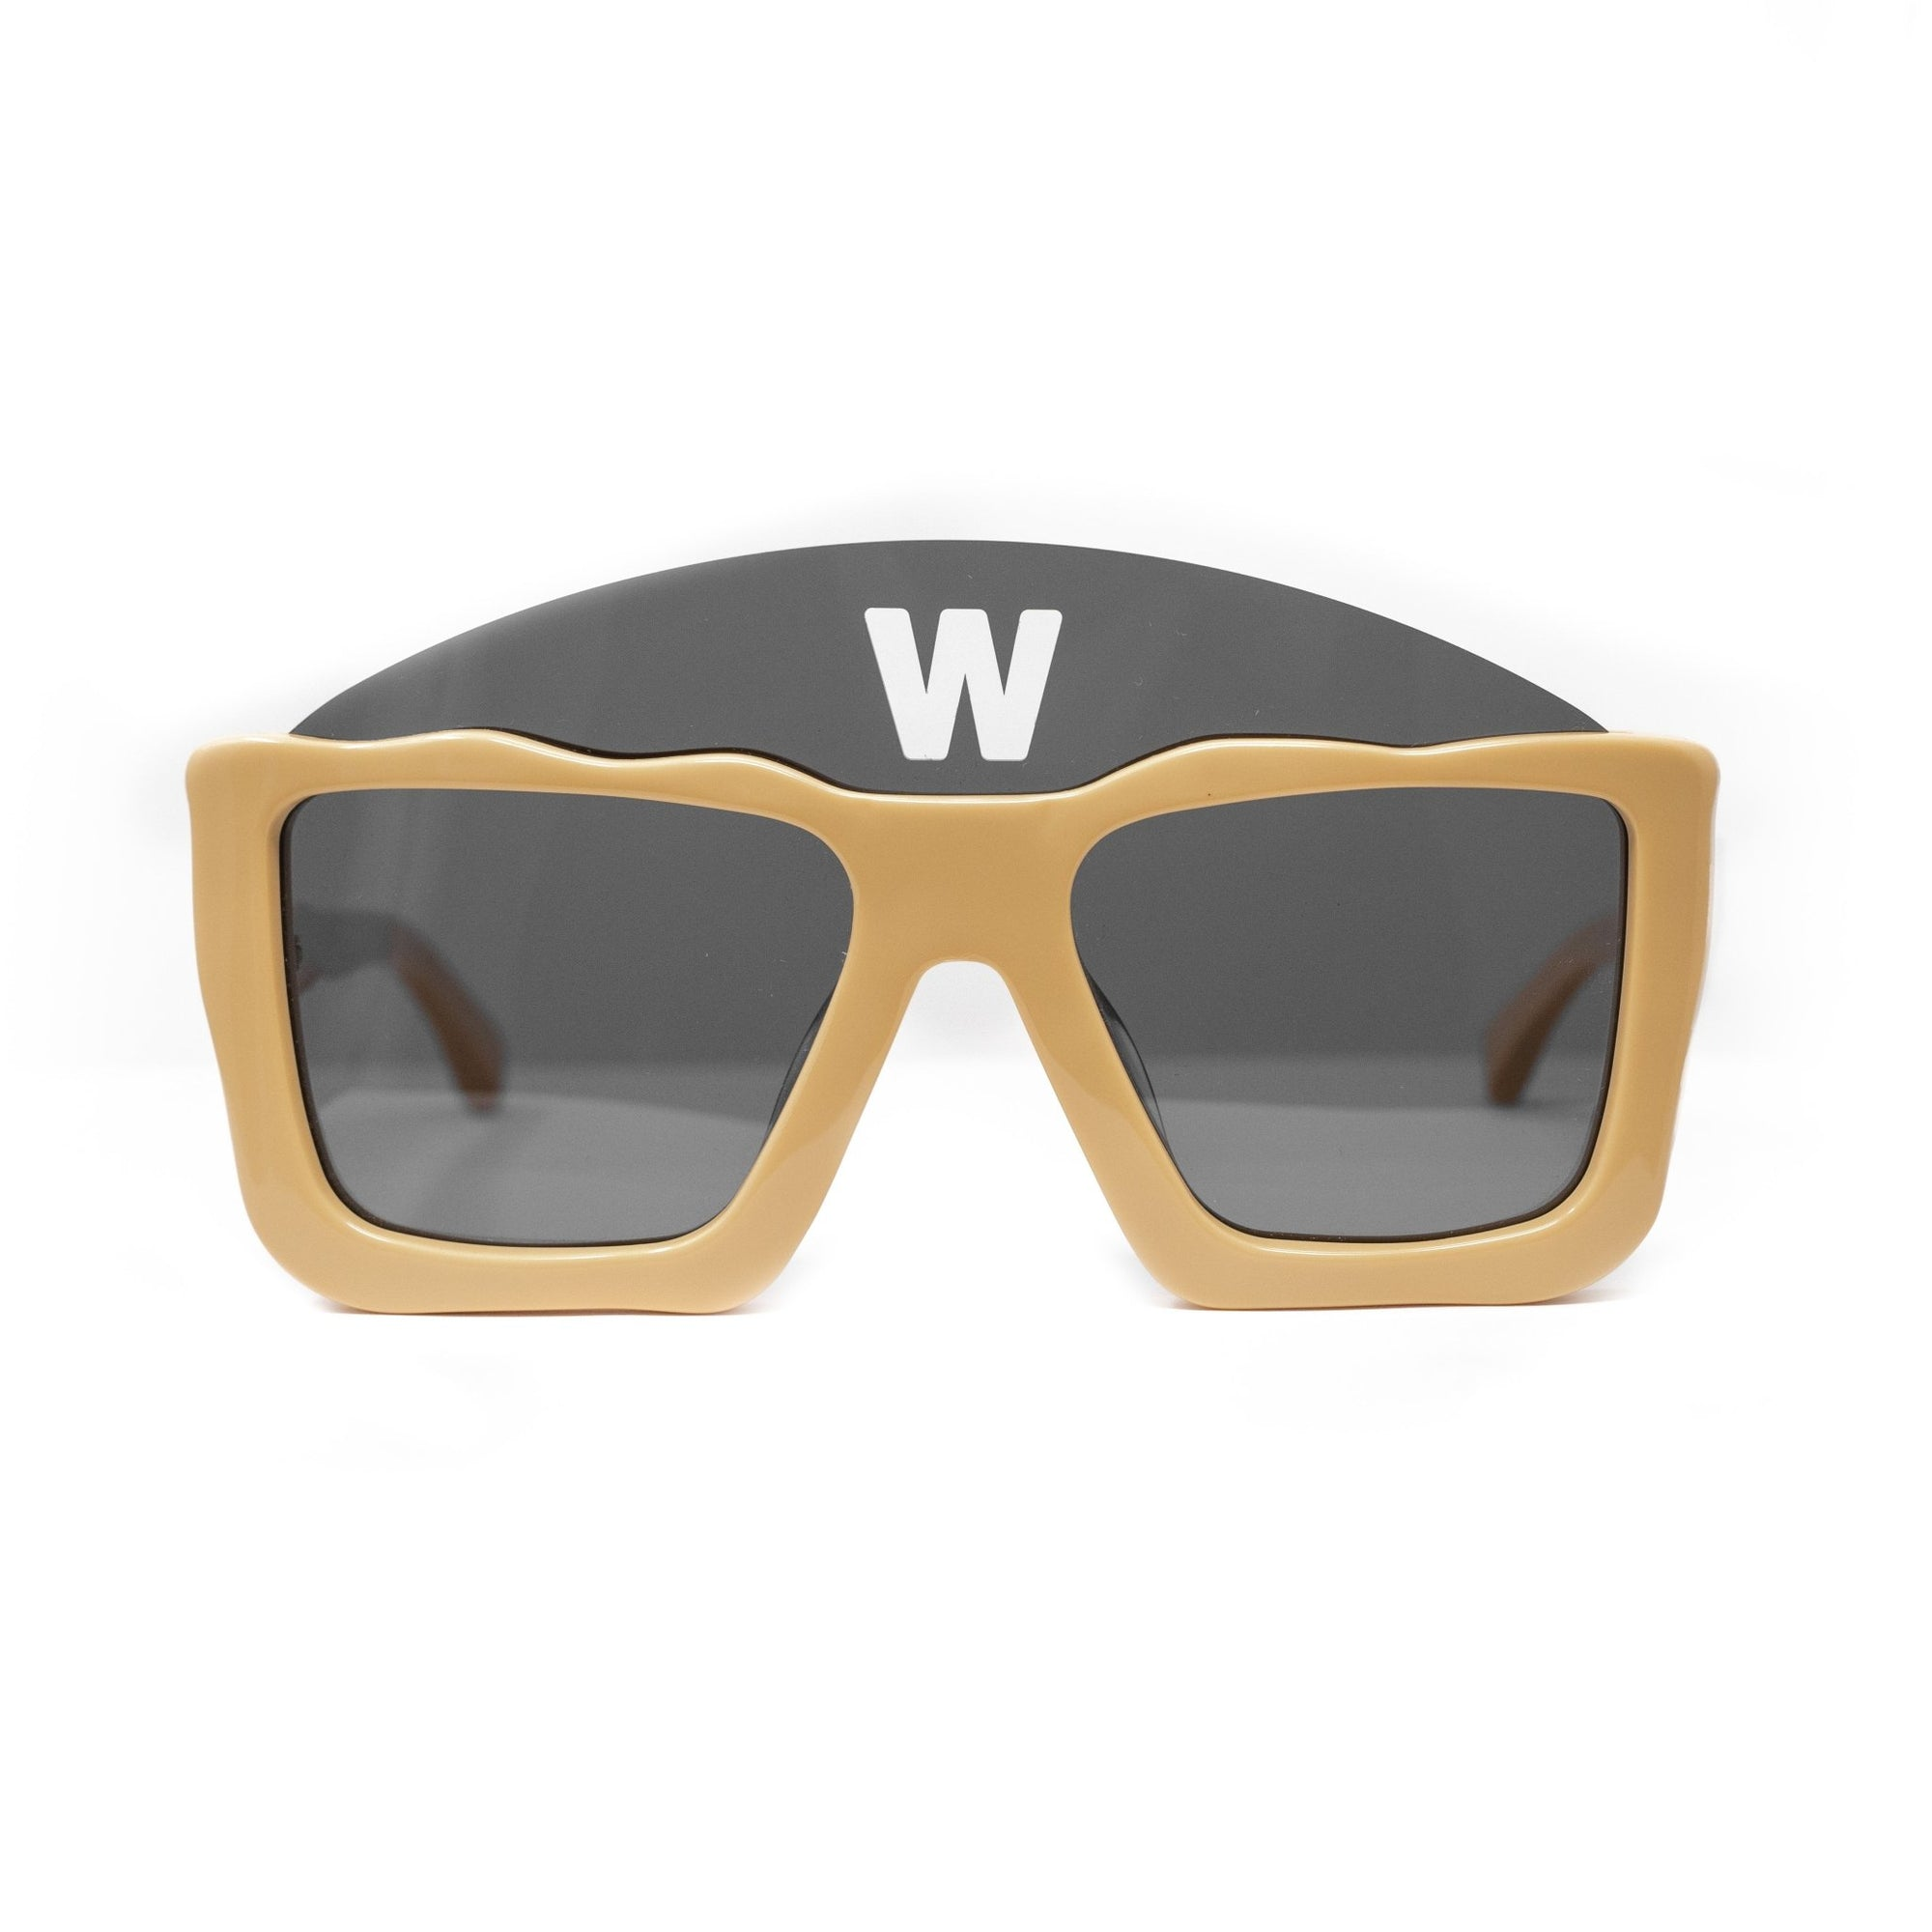 Walter Van Beirendonck Sunglasses Square Tan and Dark Grey Lenses - WVB1C1SUN - Watches & Crystals